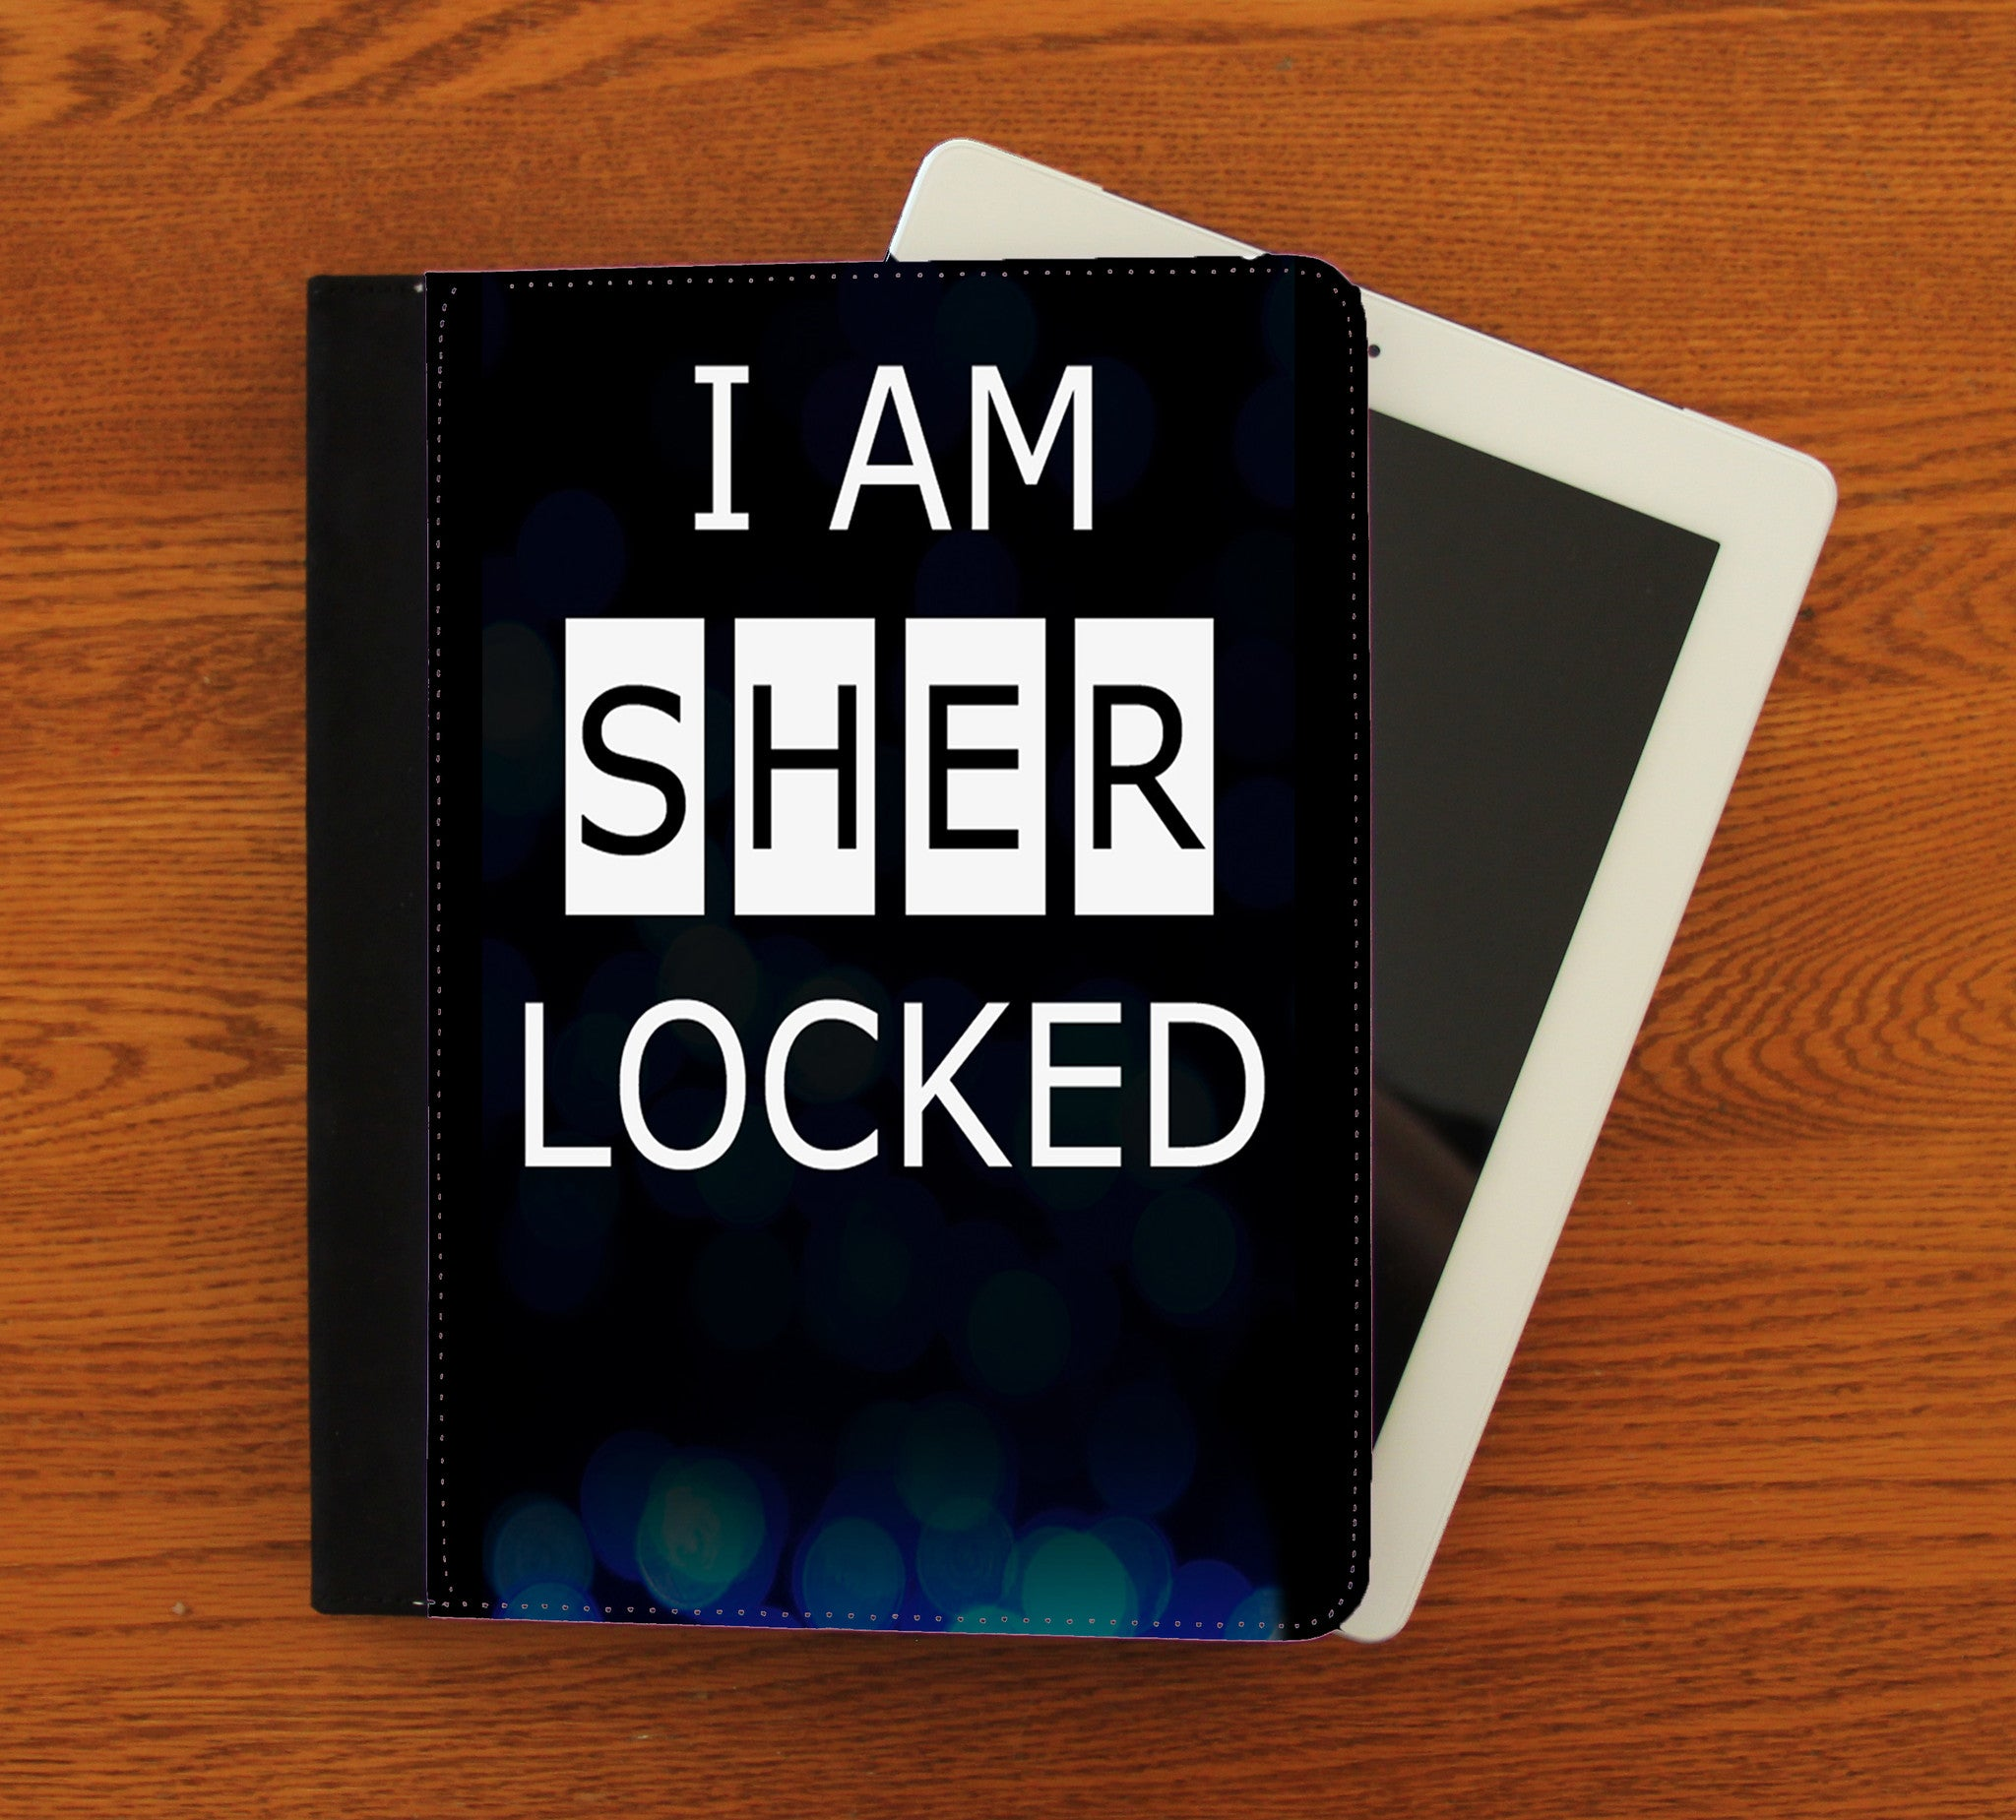 I Am Sherlocked iPad 2,3,4, iPad Mini, Canvas and Suede Protection Case - Consulting Fangeeks - 1